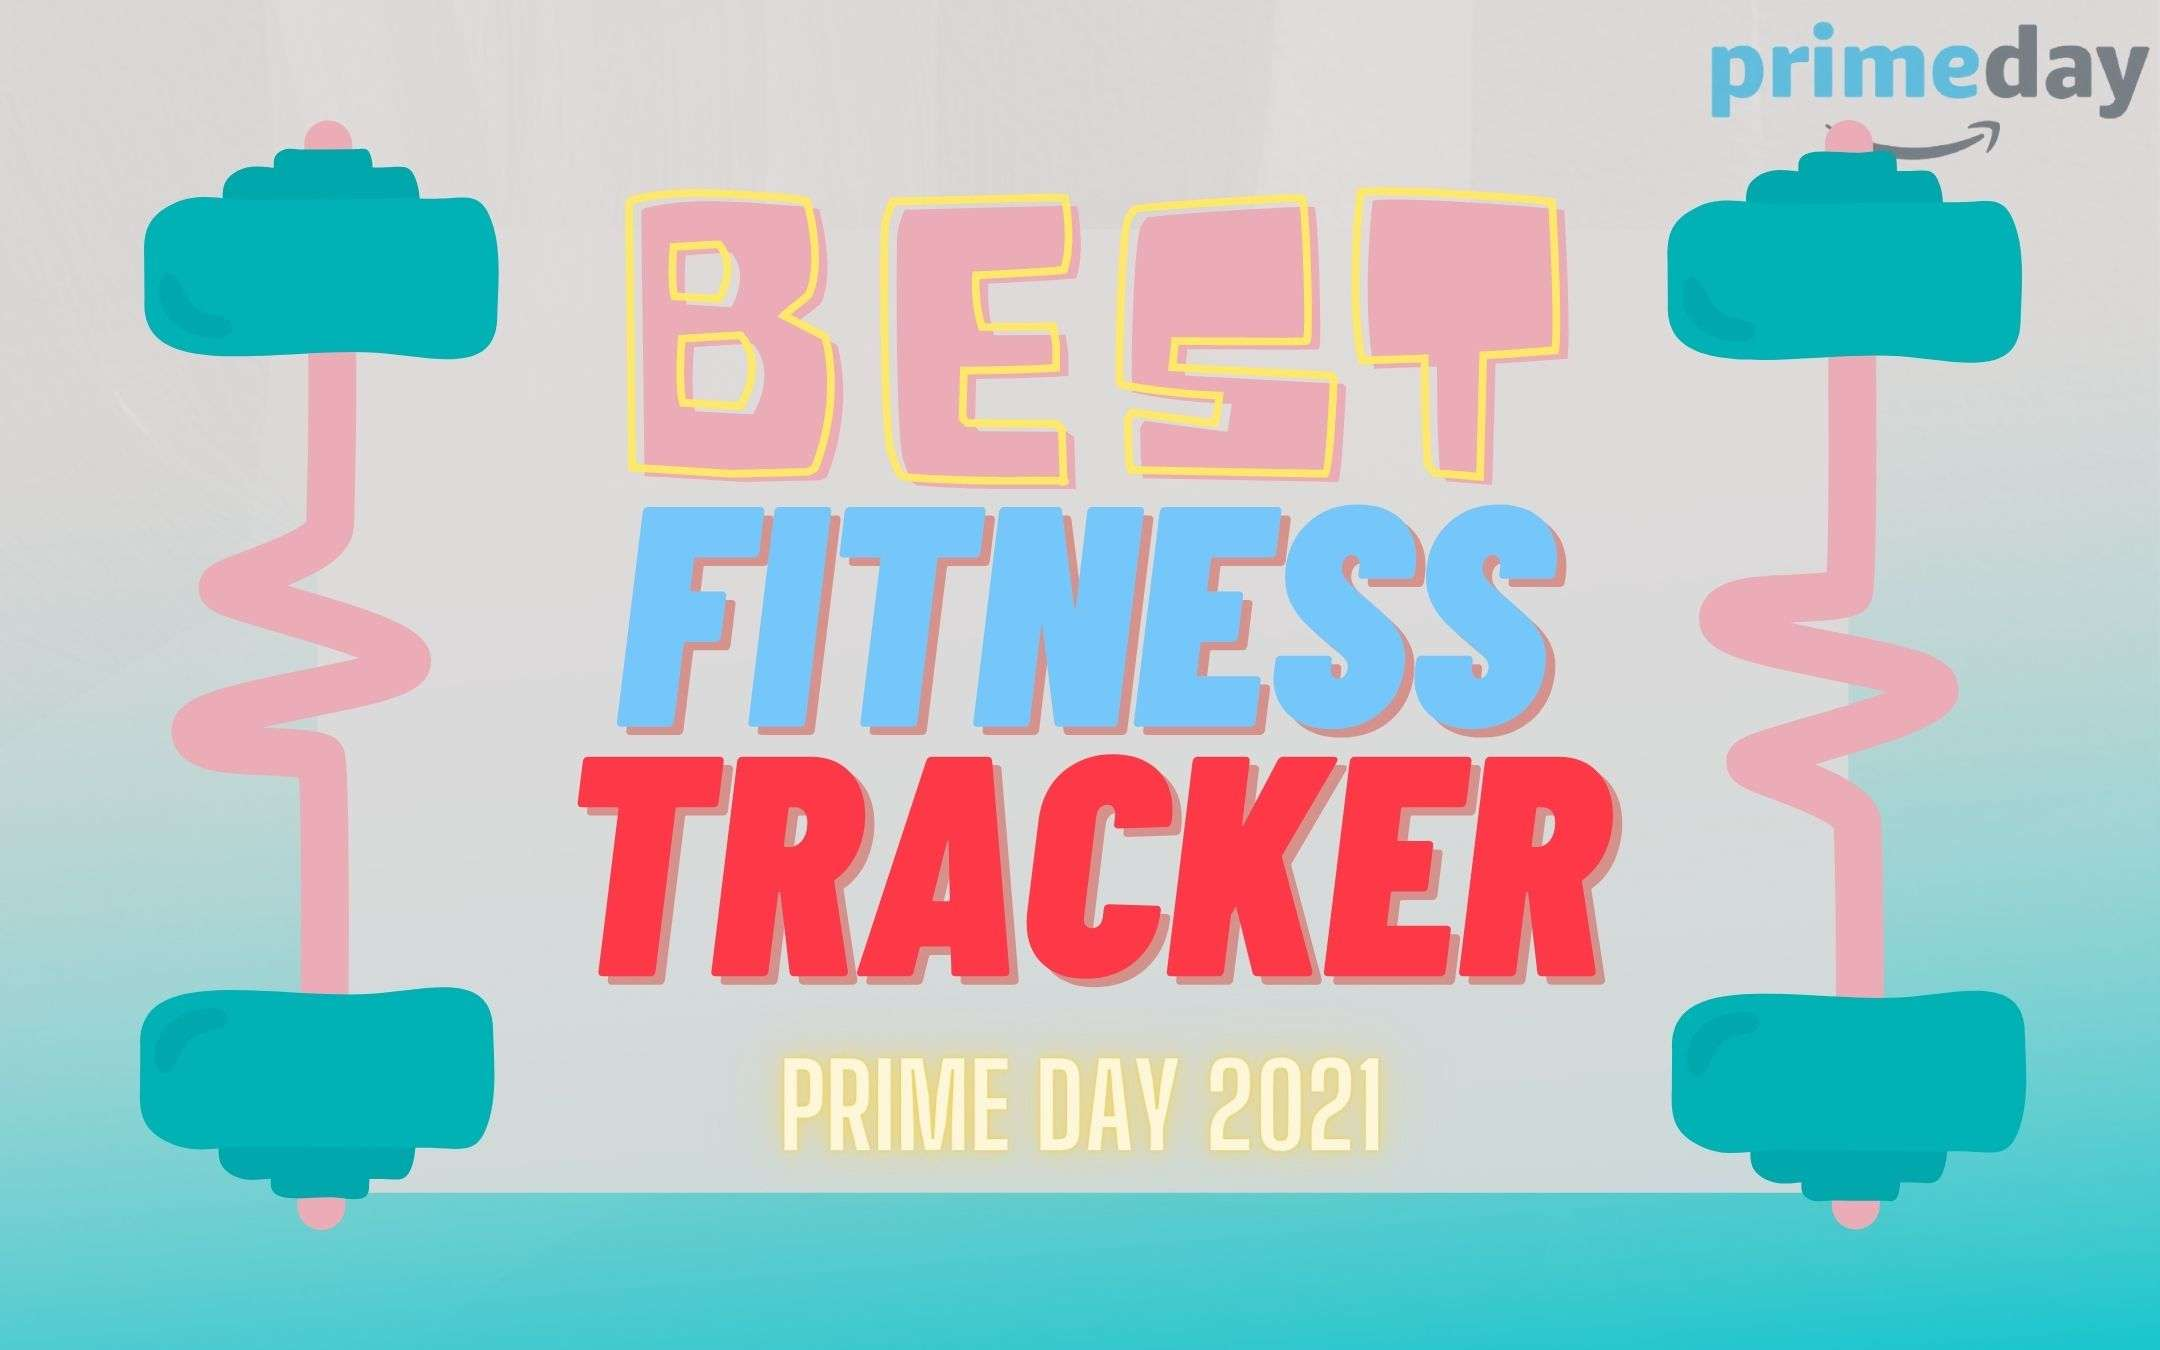 fitness tracker prime day 2021